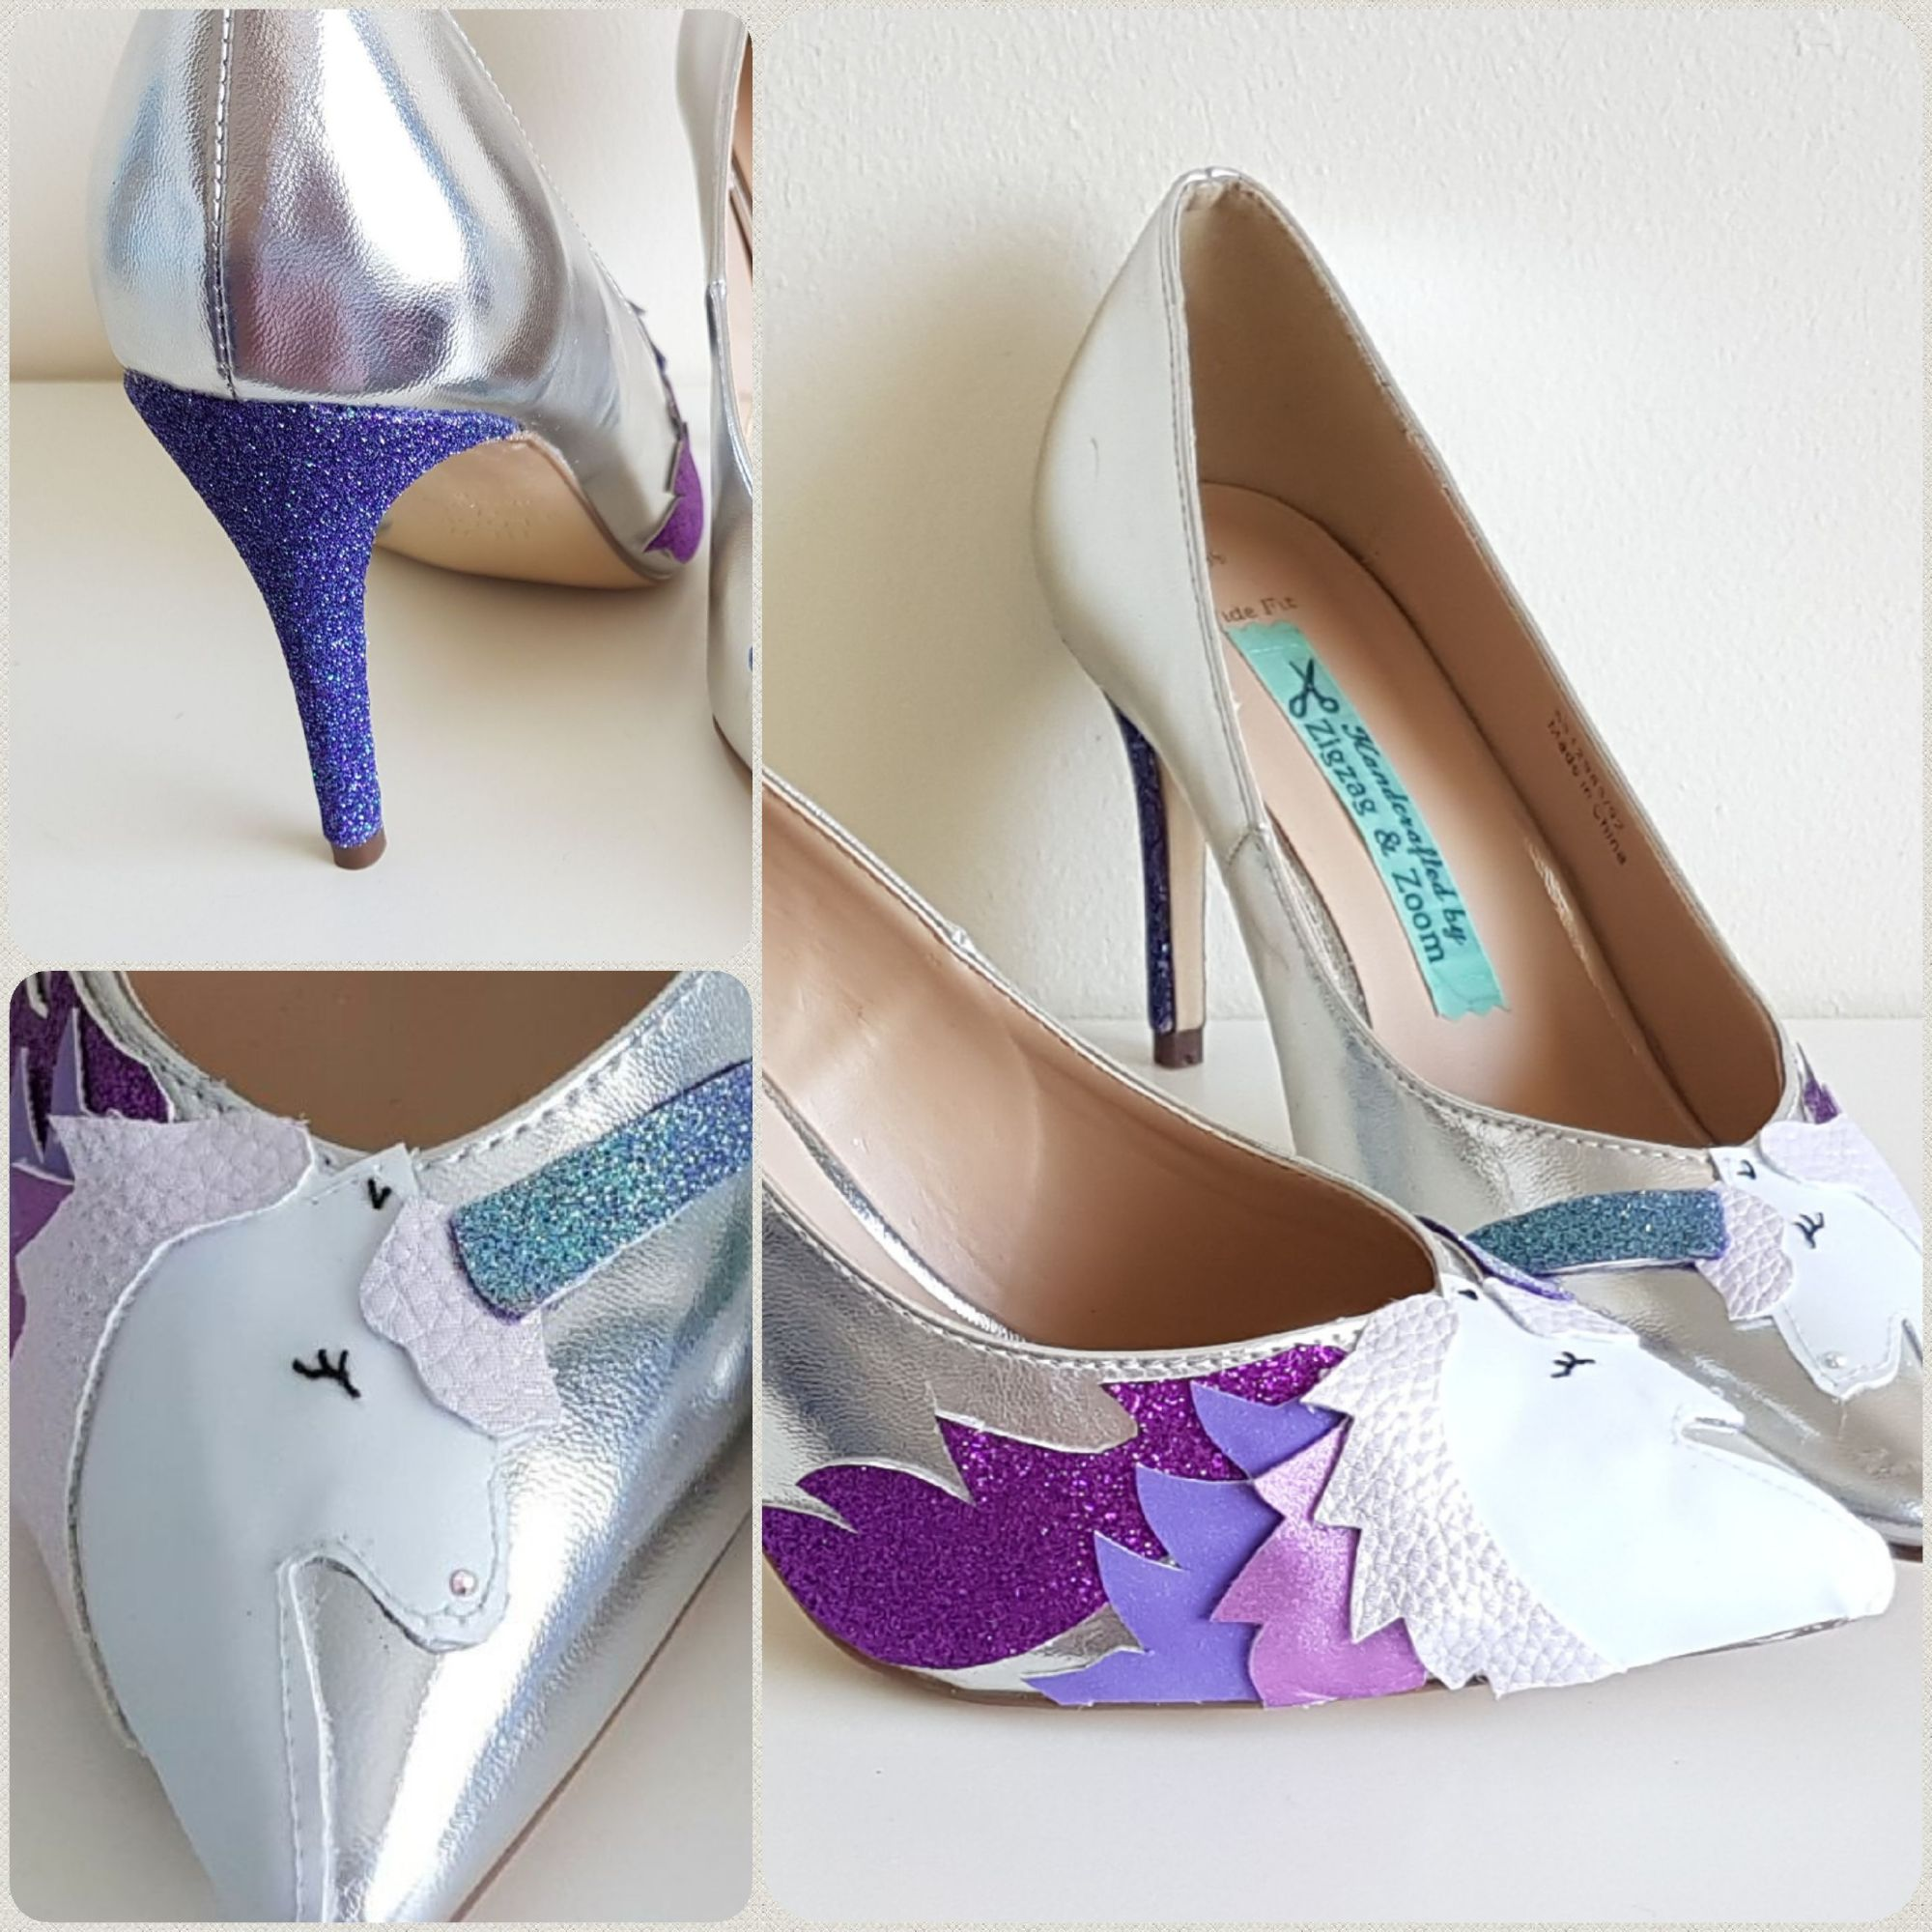 Stunning unicorn custom shoes, unicorn wedding theme, fairytale wedding ideas